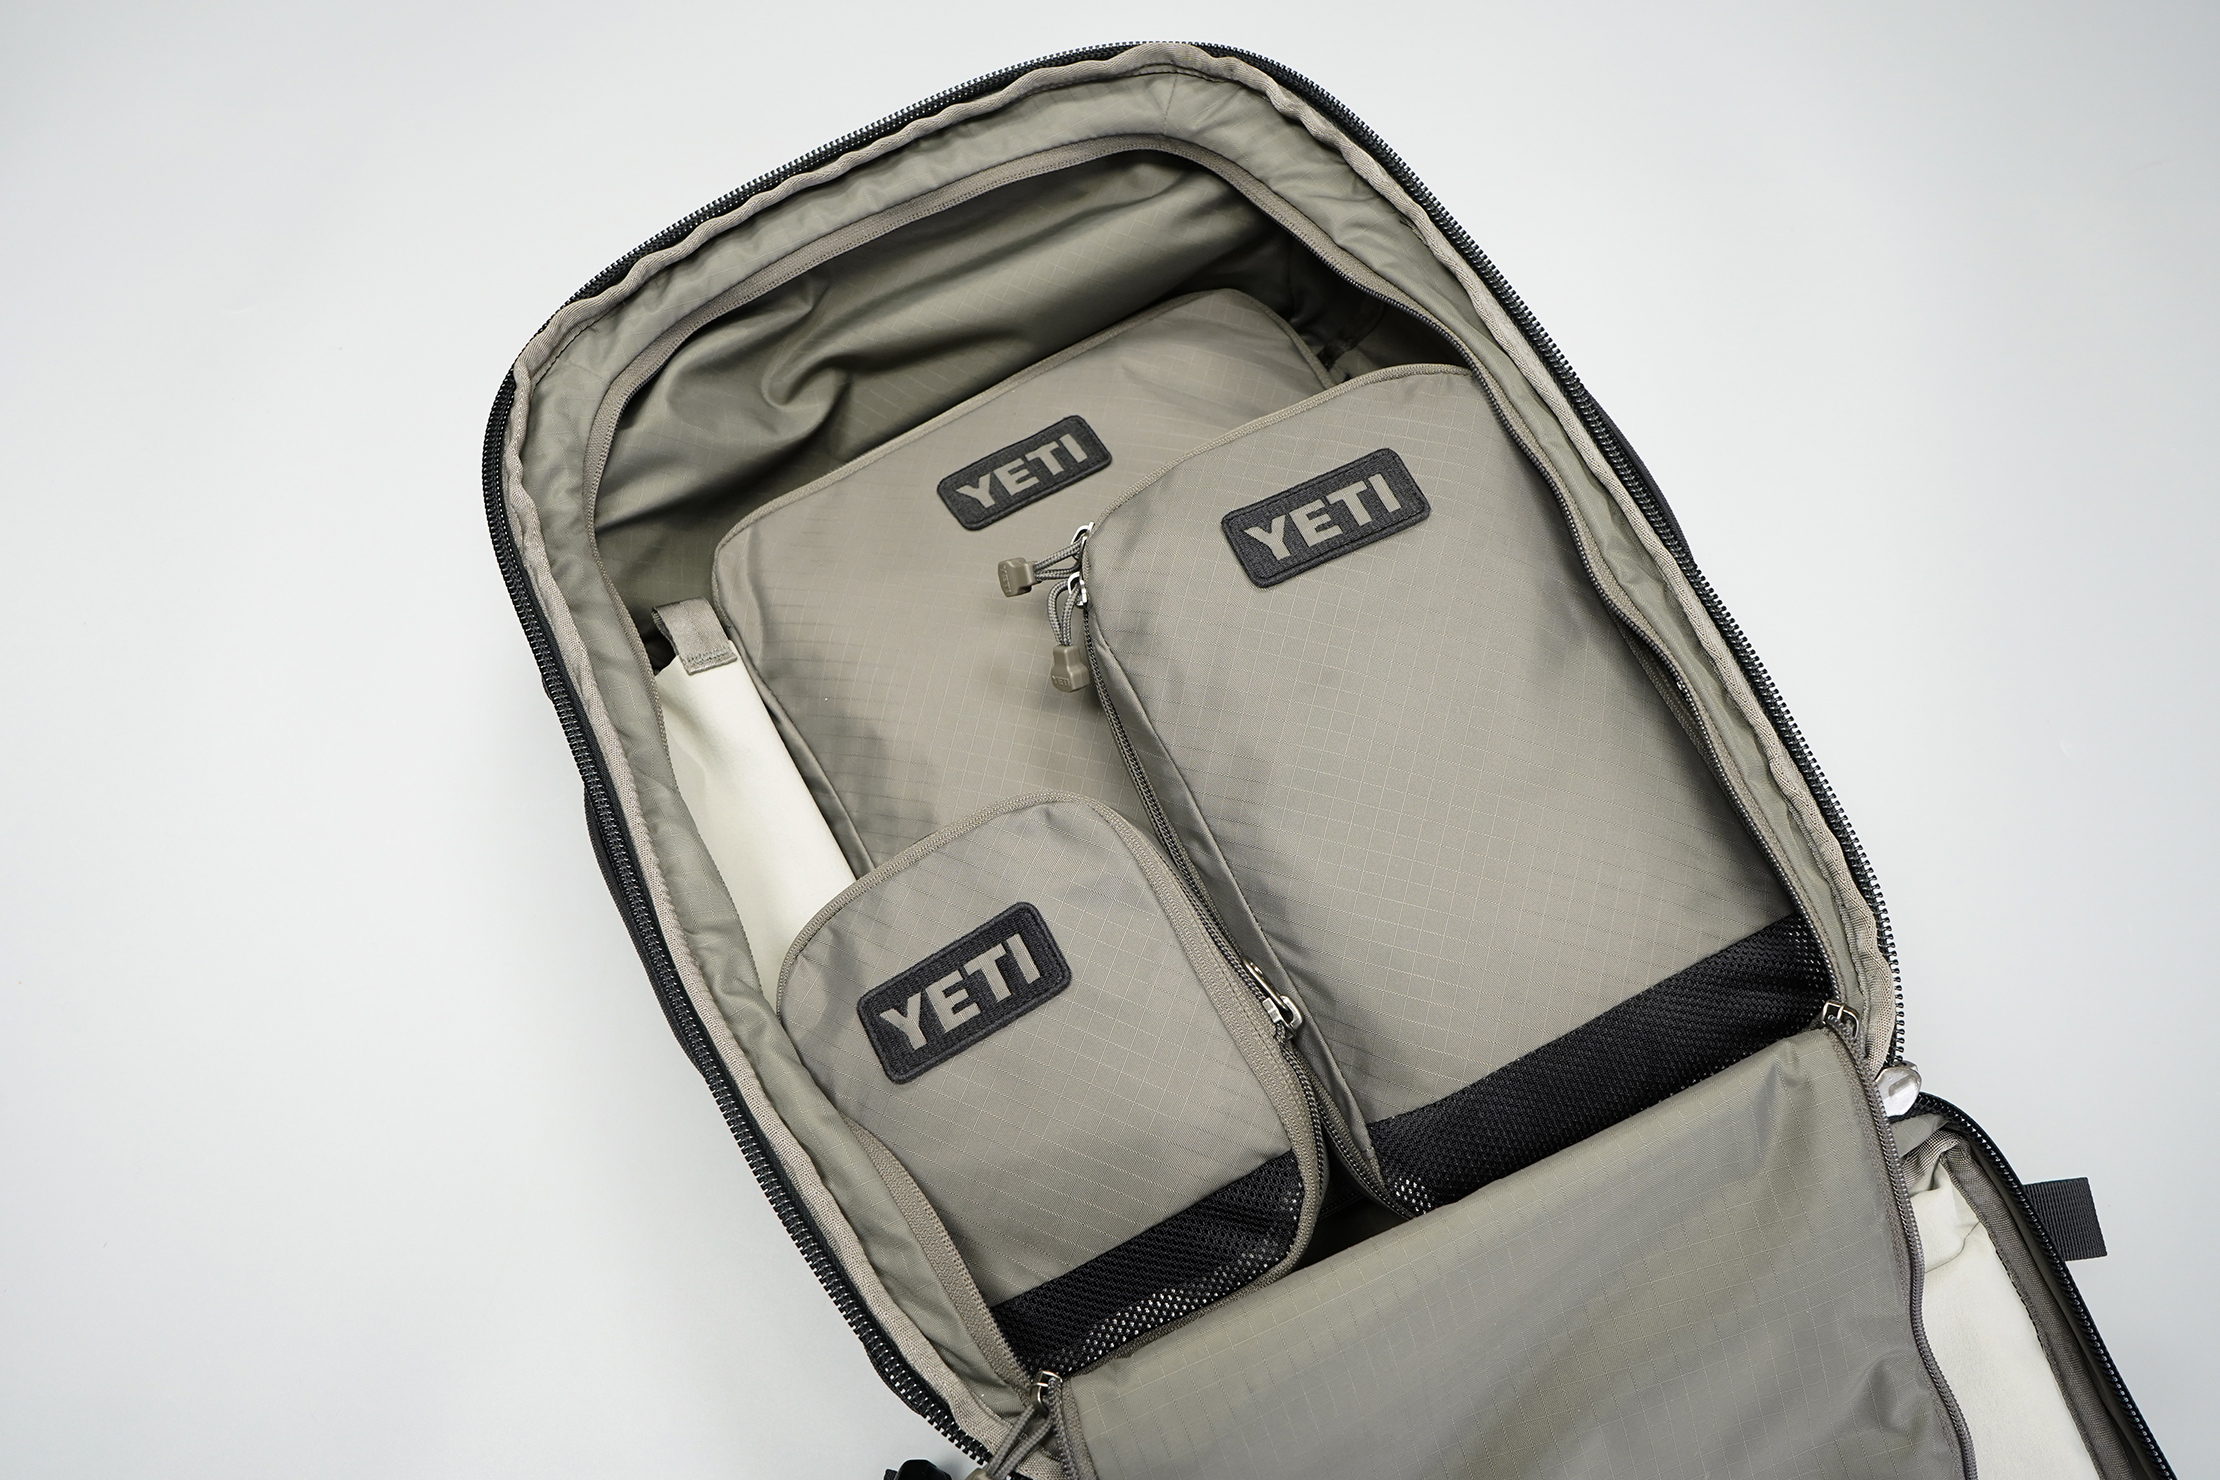 YETI Crossroads 35L Backpack | The clothes compartment, filled with packing cubes.